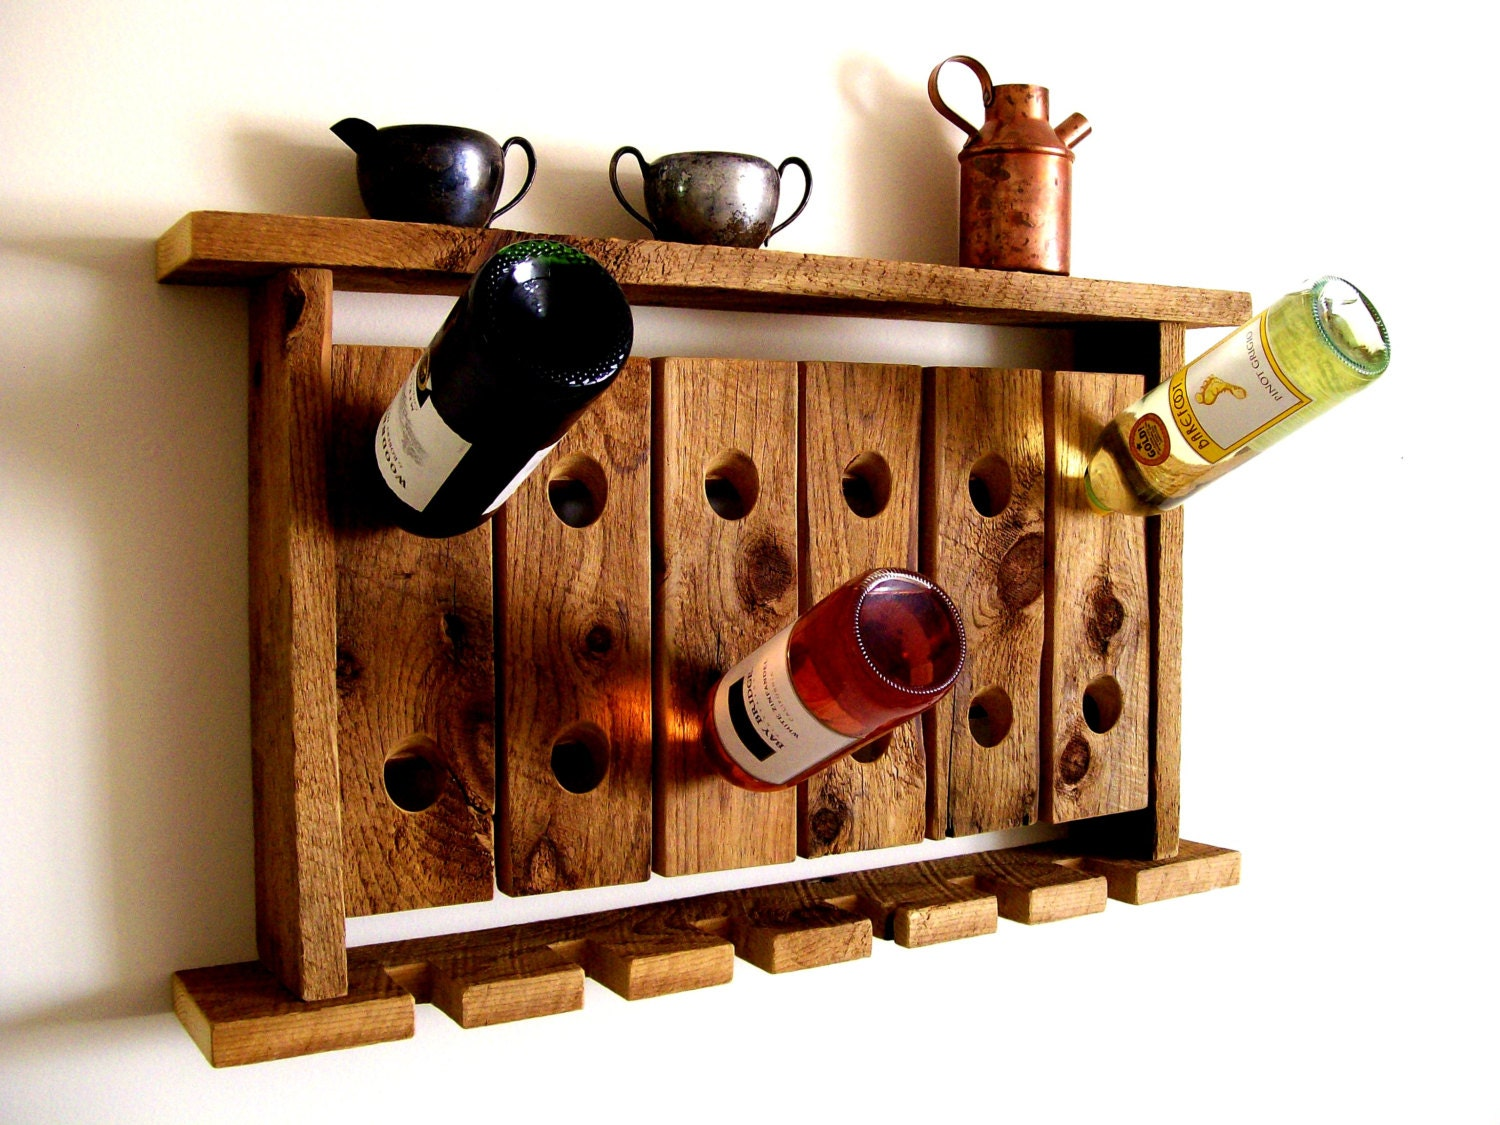 reclaimed wood wine rack wine glass holder wall shelf riddling. Black Bedroom Furniture Sets. Home Design Ideas